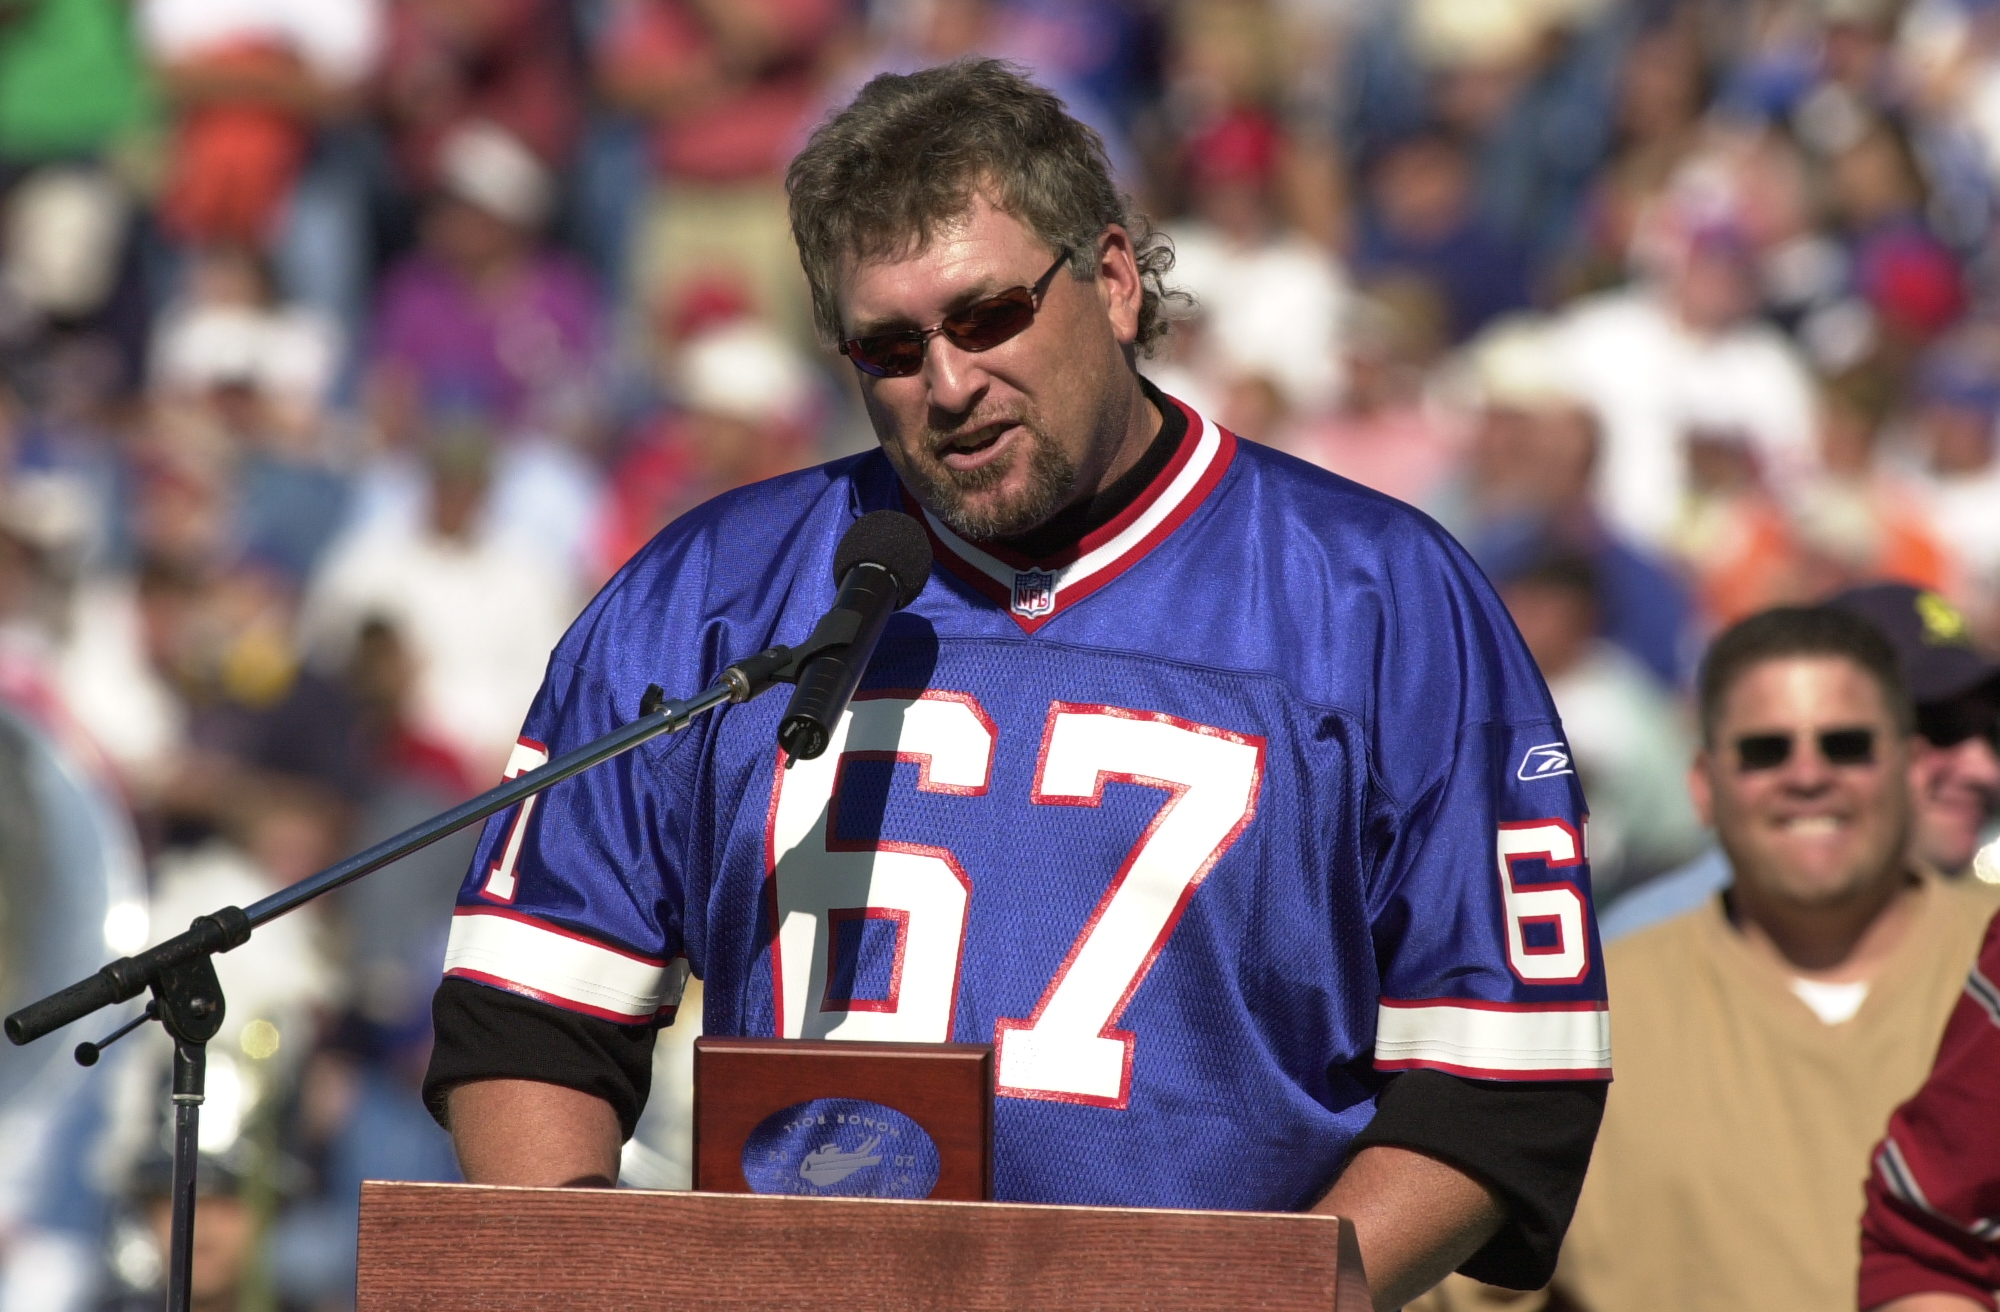 Kent Hull speaks during his Buffalo Bills Wall of Fame induction ceremony in 2002. (James P. McCoy/News file photo)